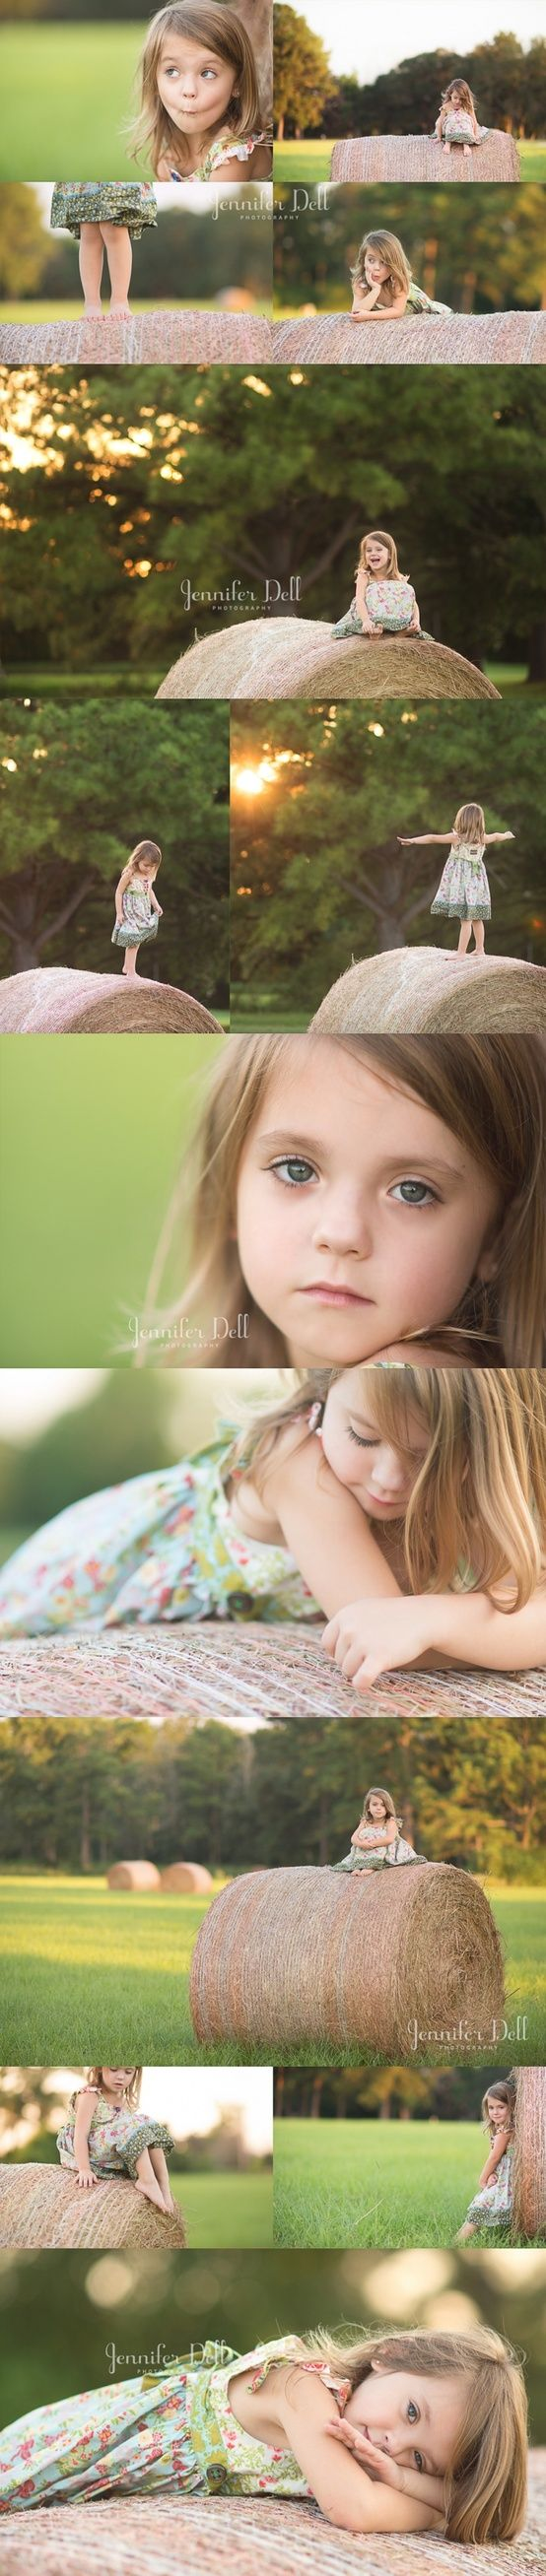 Jennifer Dell Photography|Discovered « Evoking You|Inspiration for your photography